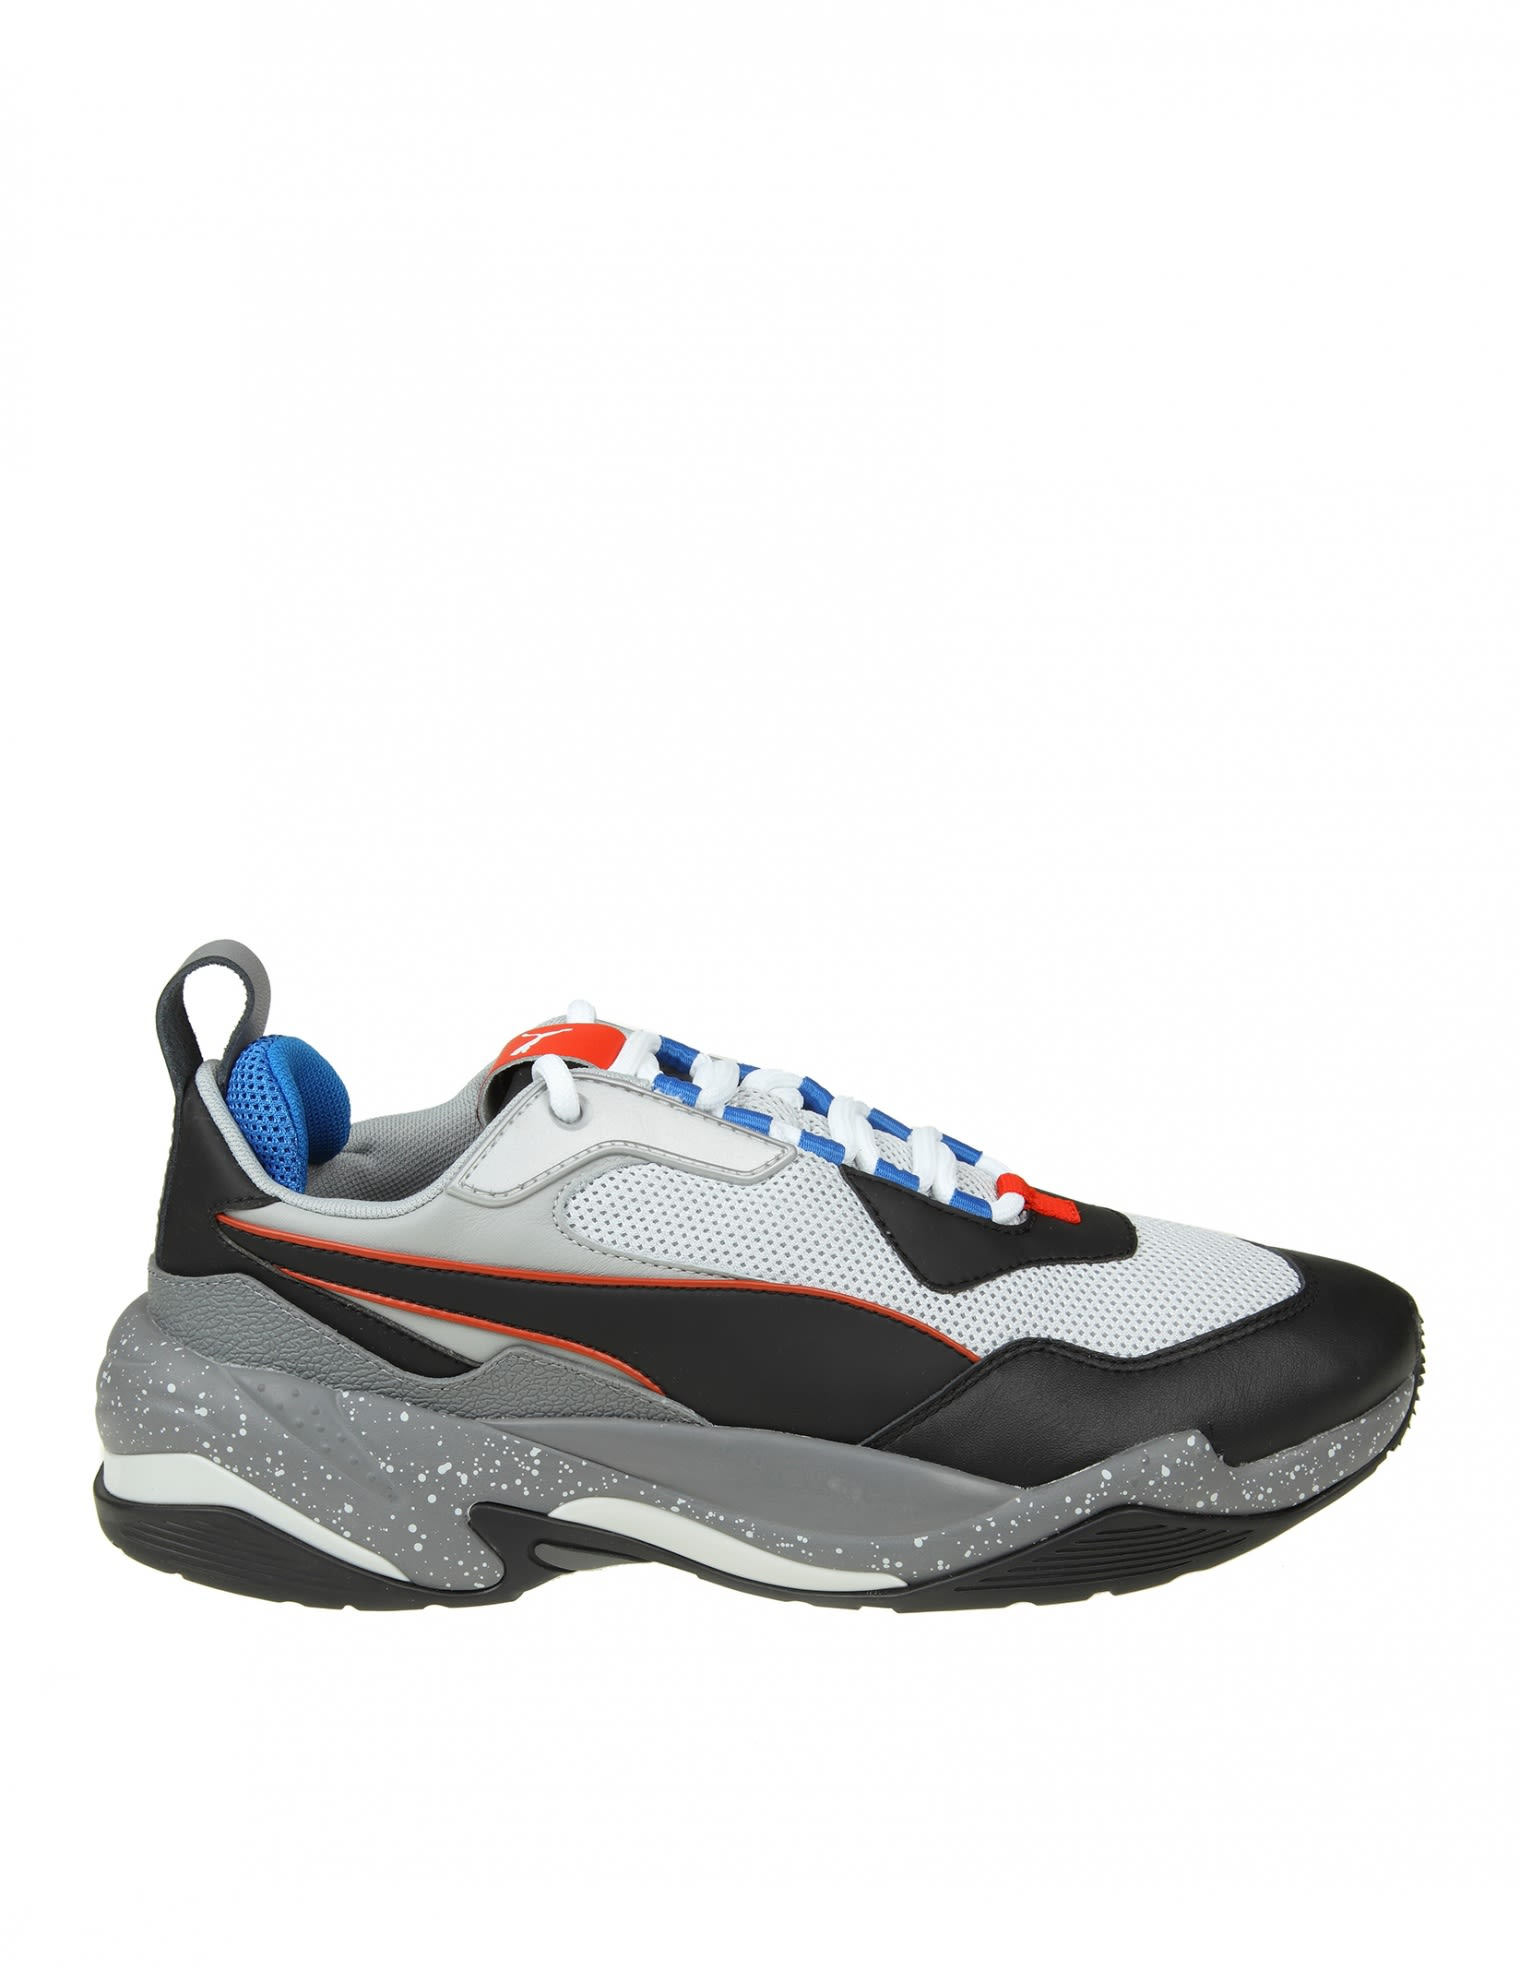 "puma -  Sneakers ""thunder Elettric"" In Gray / Black Leather"